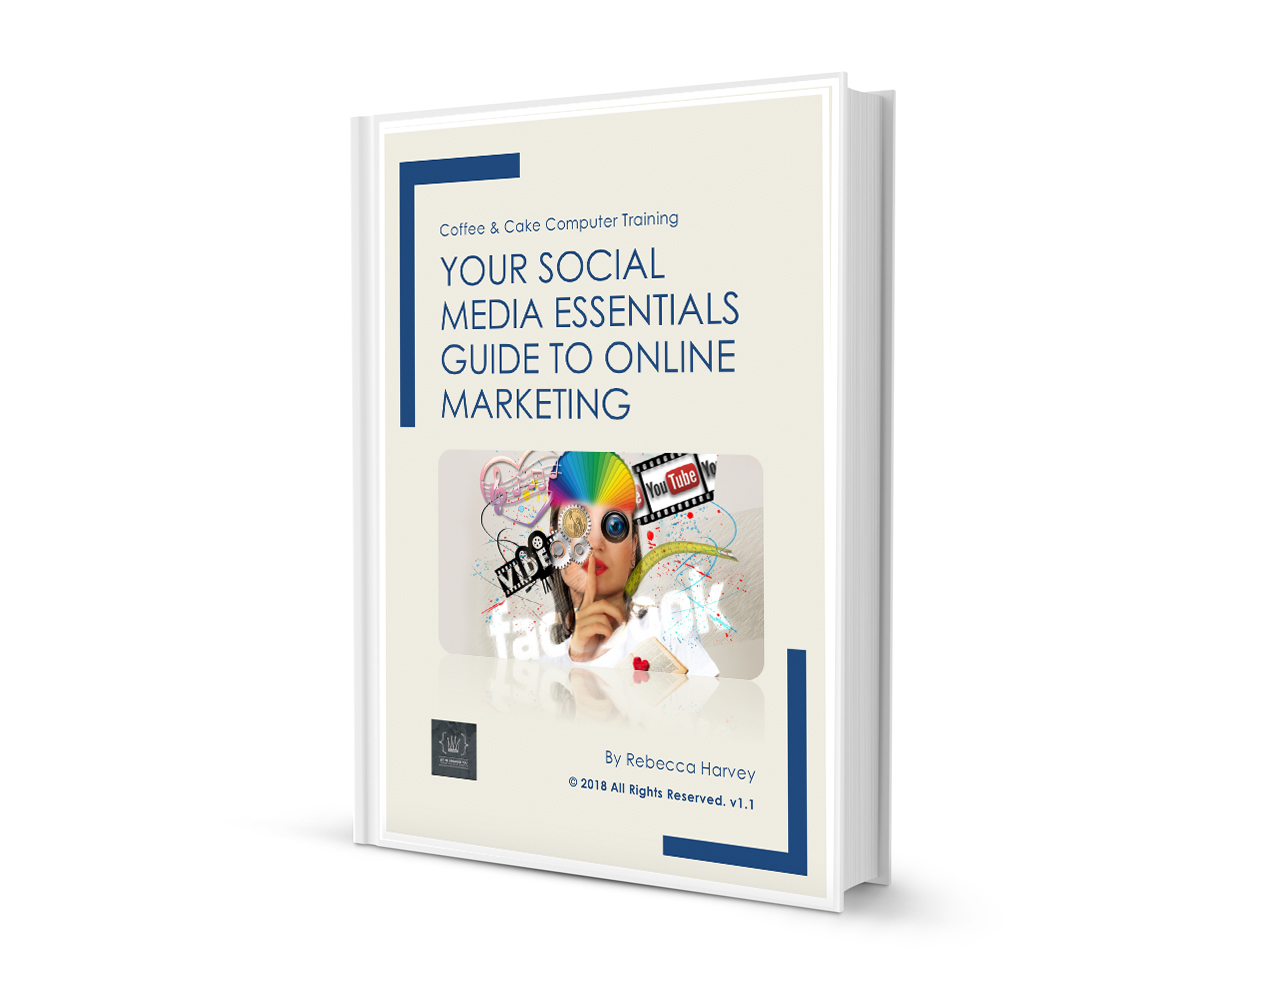 Your Social Media Essentials Guide To Online Marketing Ebook